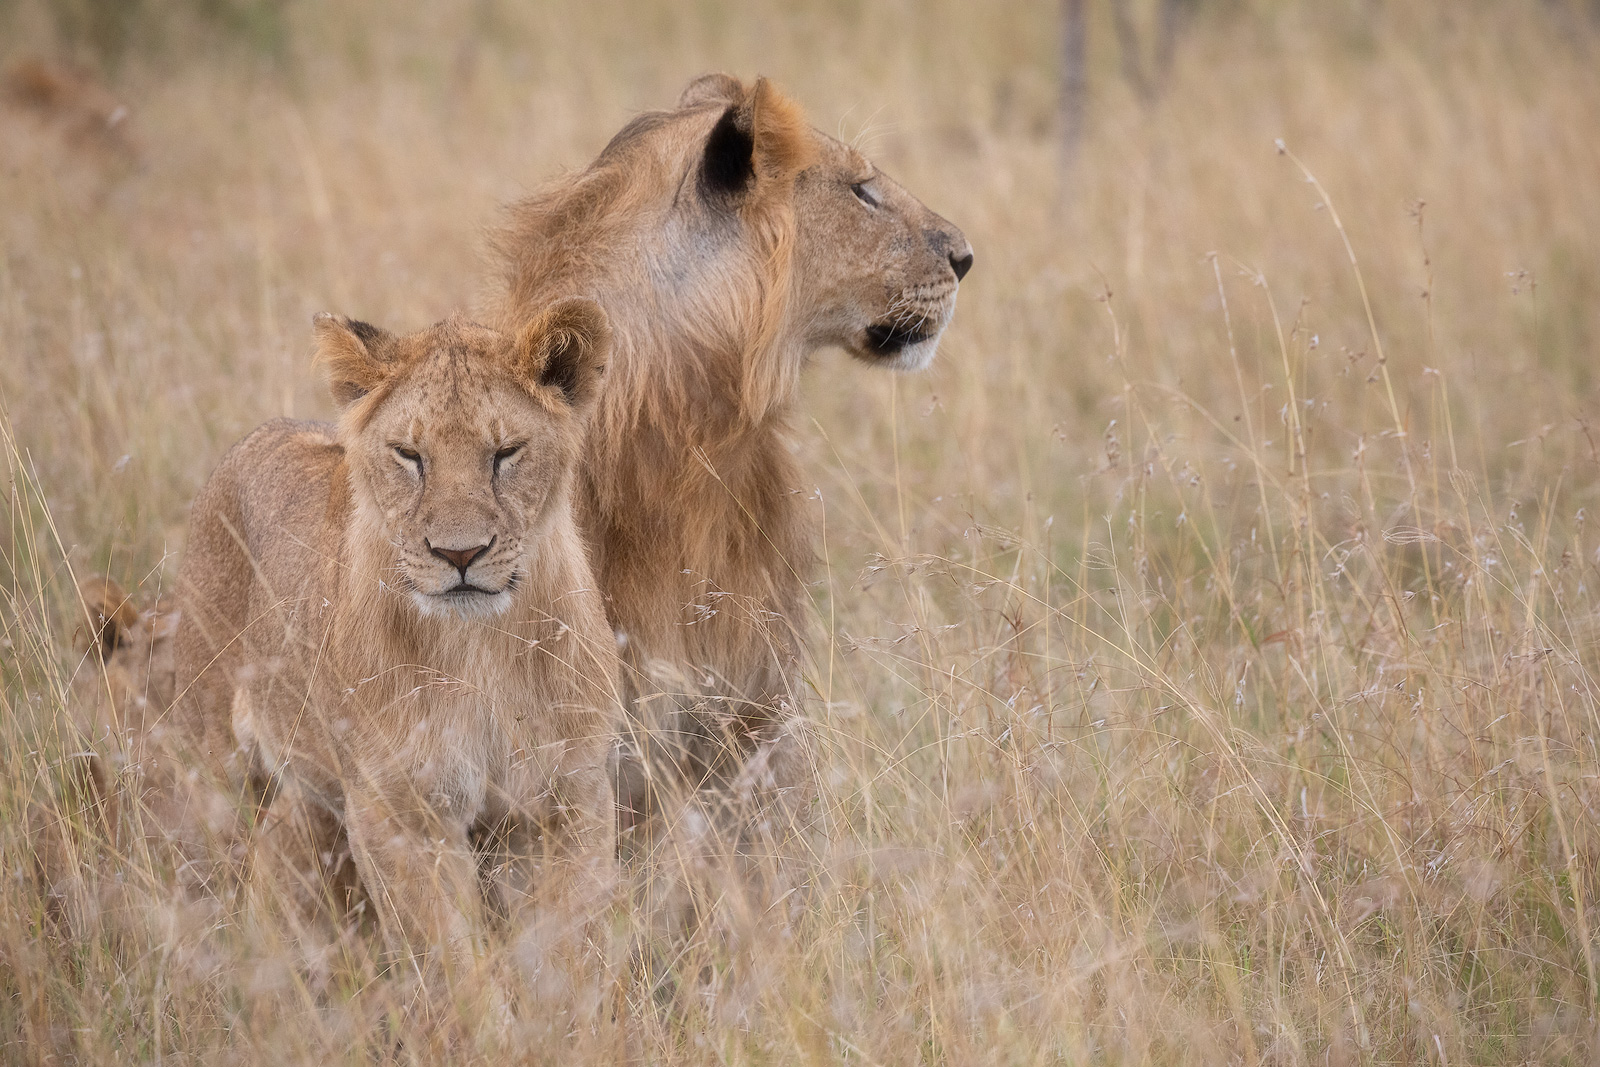 A beautiful lion and lioness relaxing in tall grass in Kenya.